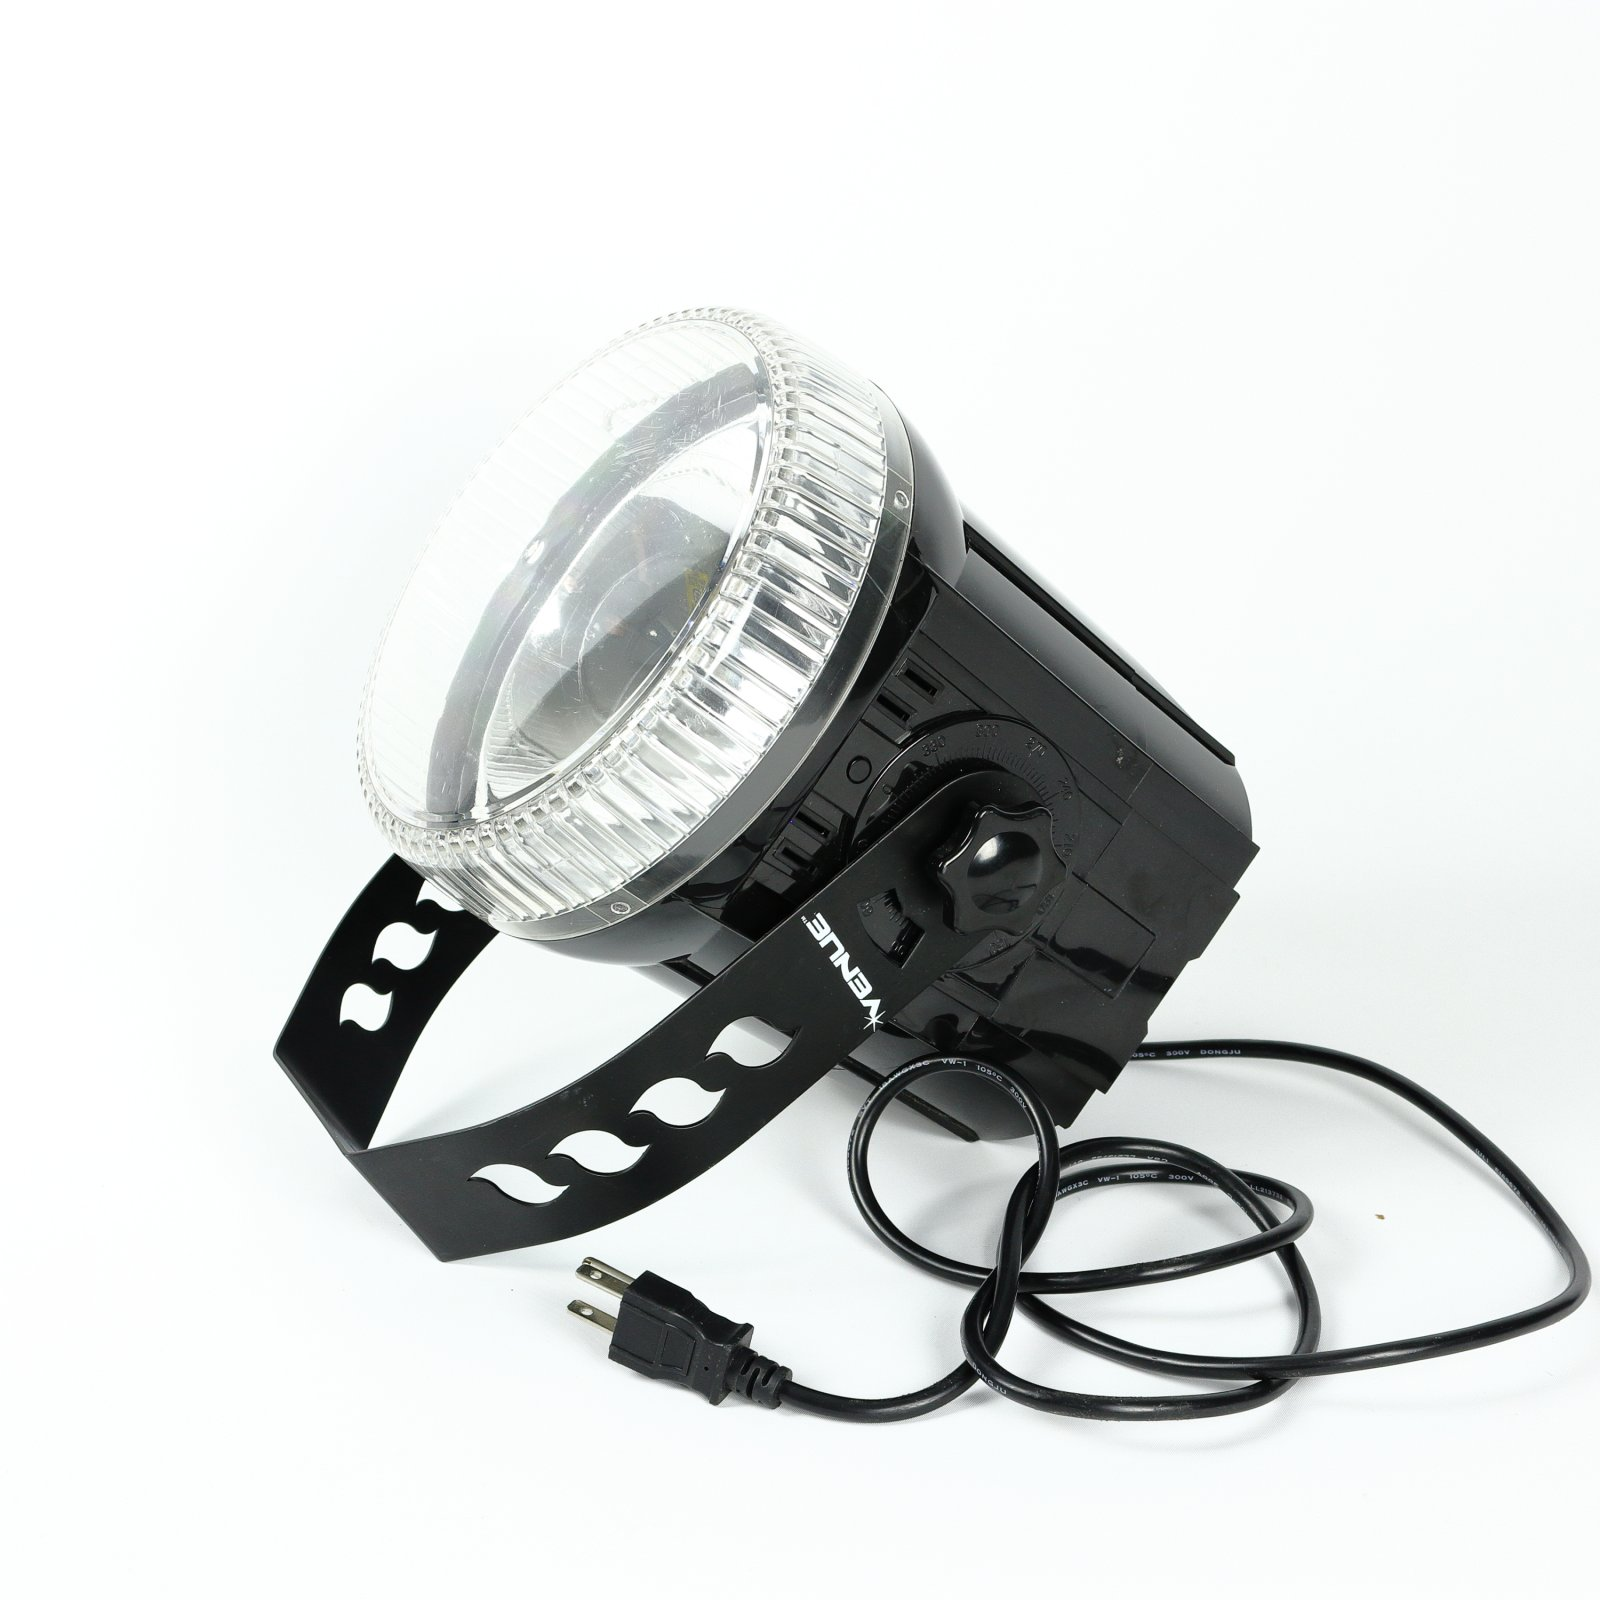 Venue FL-45P 45W Adjustable Speed Strobe Light (USED)